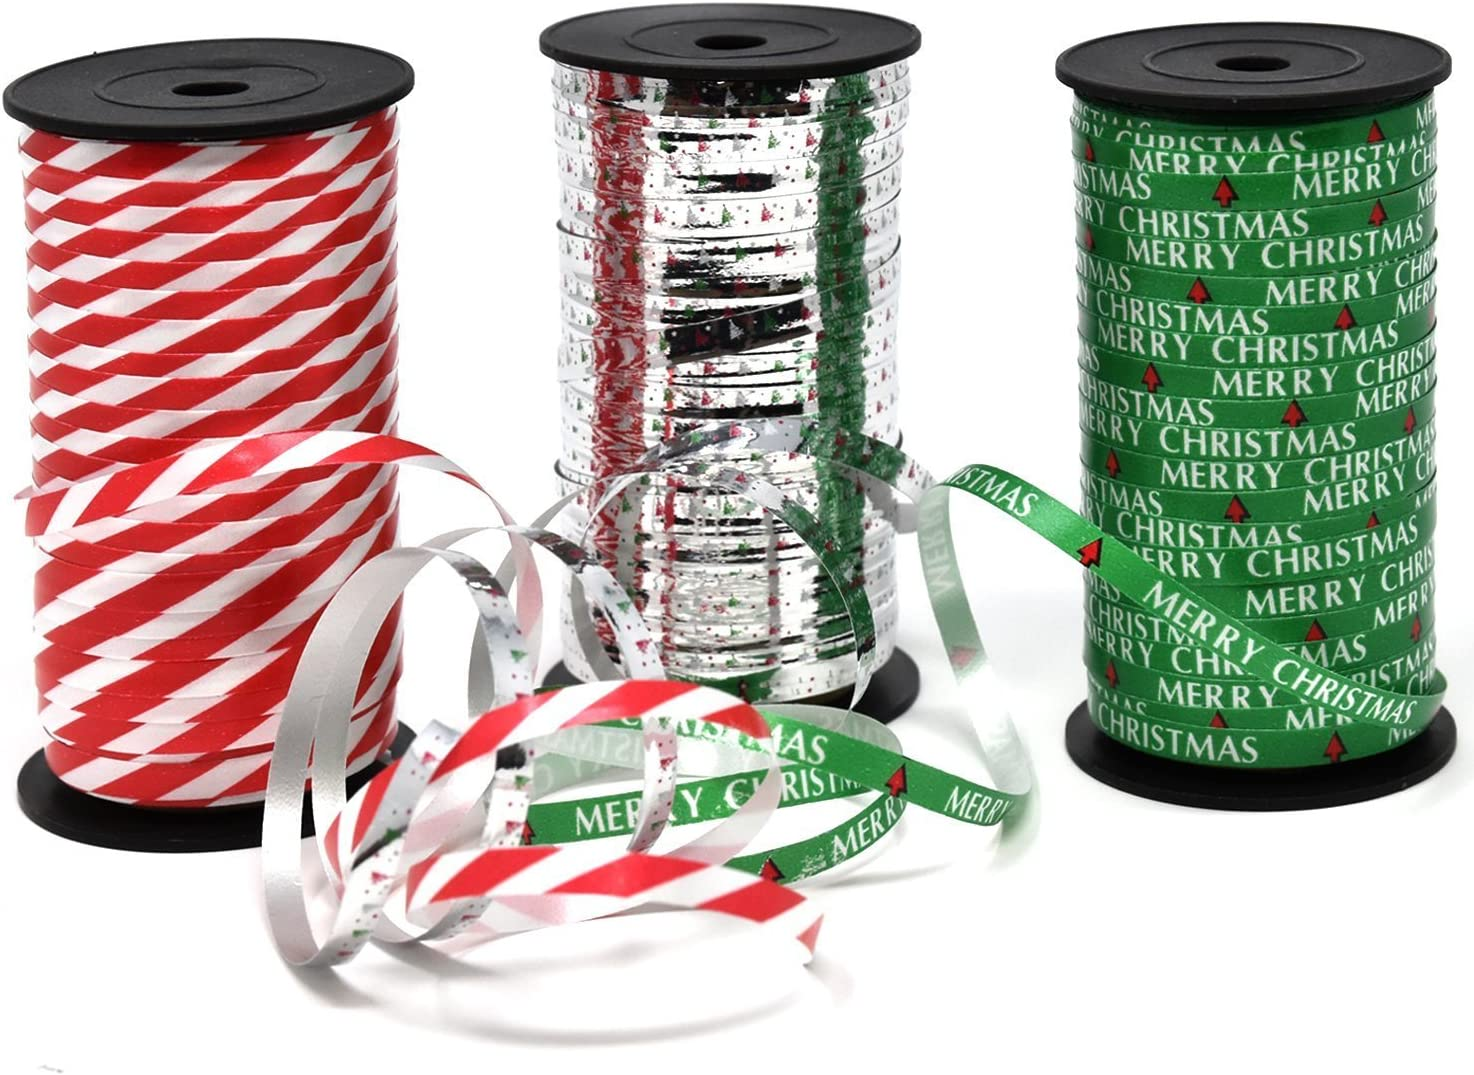 Christmas Curling Ribbon Pack of 3 Rolls Green, Red & White Stripes, and Metallic Silver; Holiday Party Crafts Supplies Decorations- 100 Yards Per Roll - Total of 900 Feet; by Gift Boutique